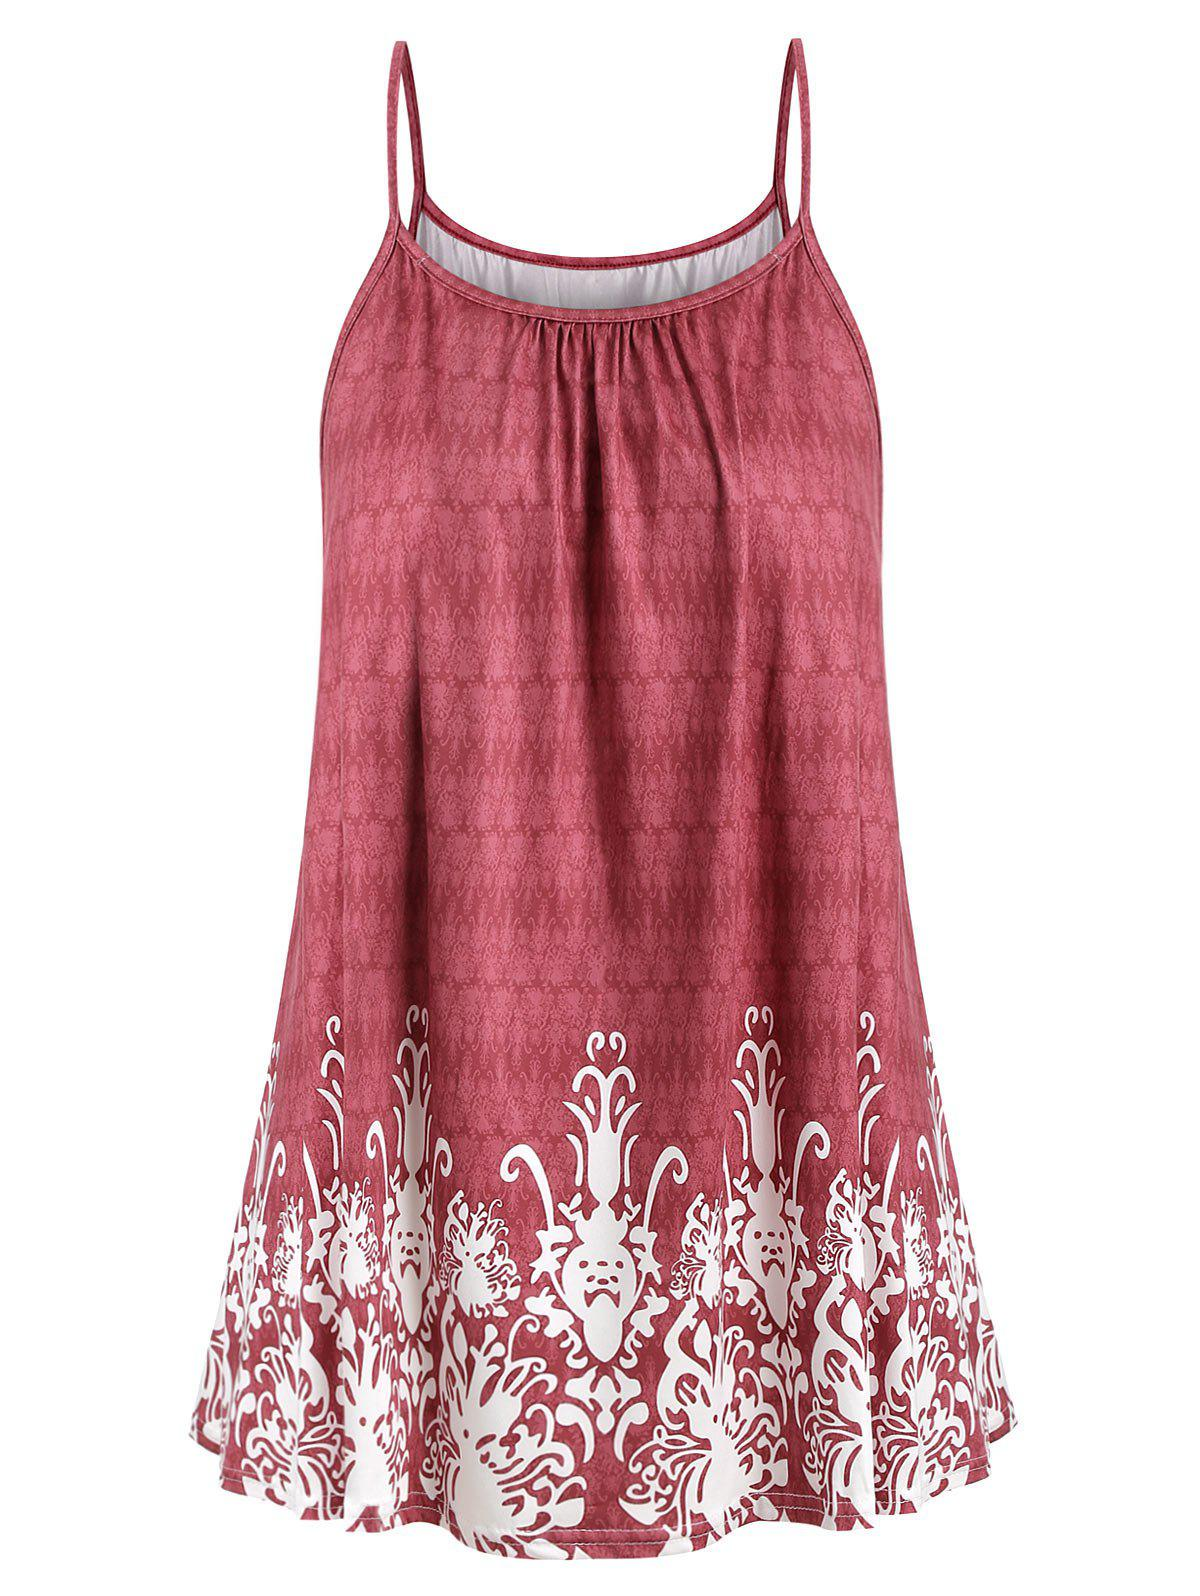 Printed Plus Size Cami Top - RED WINE 5X